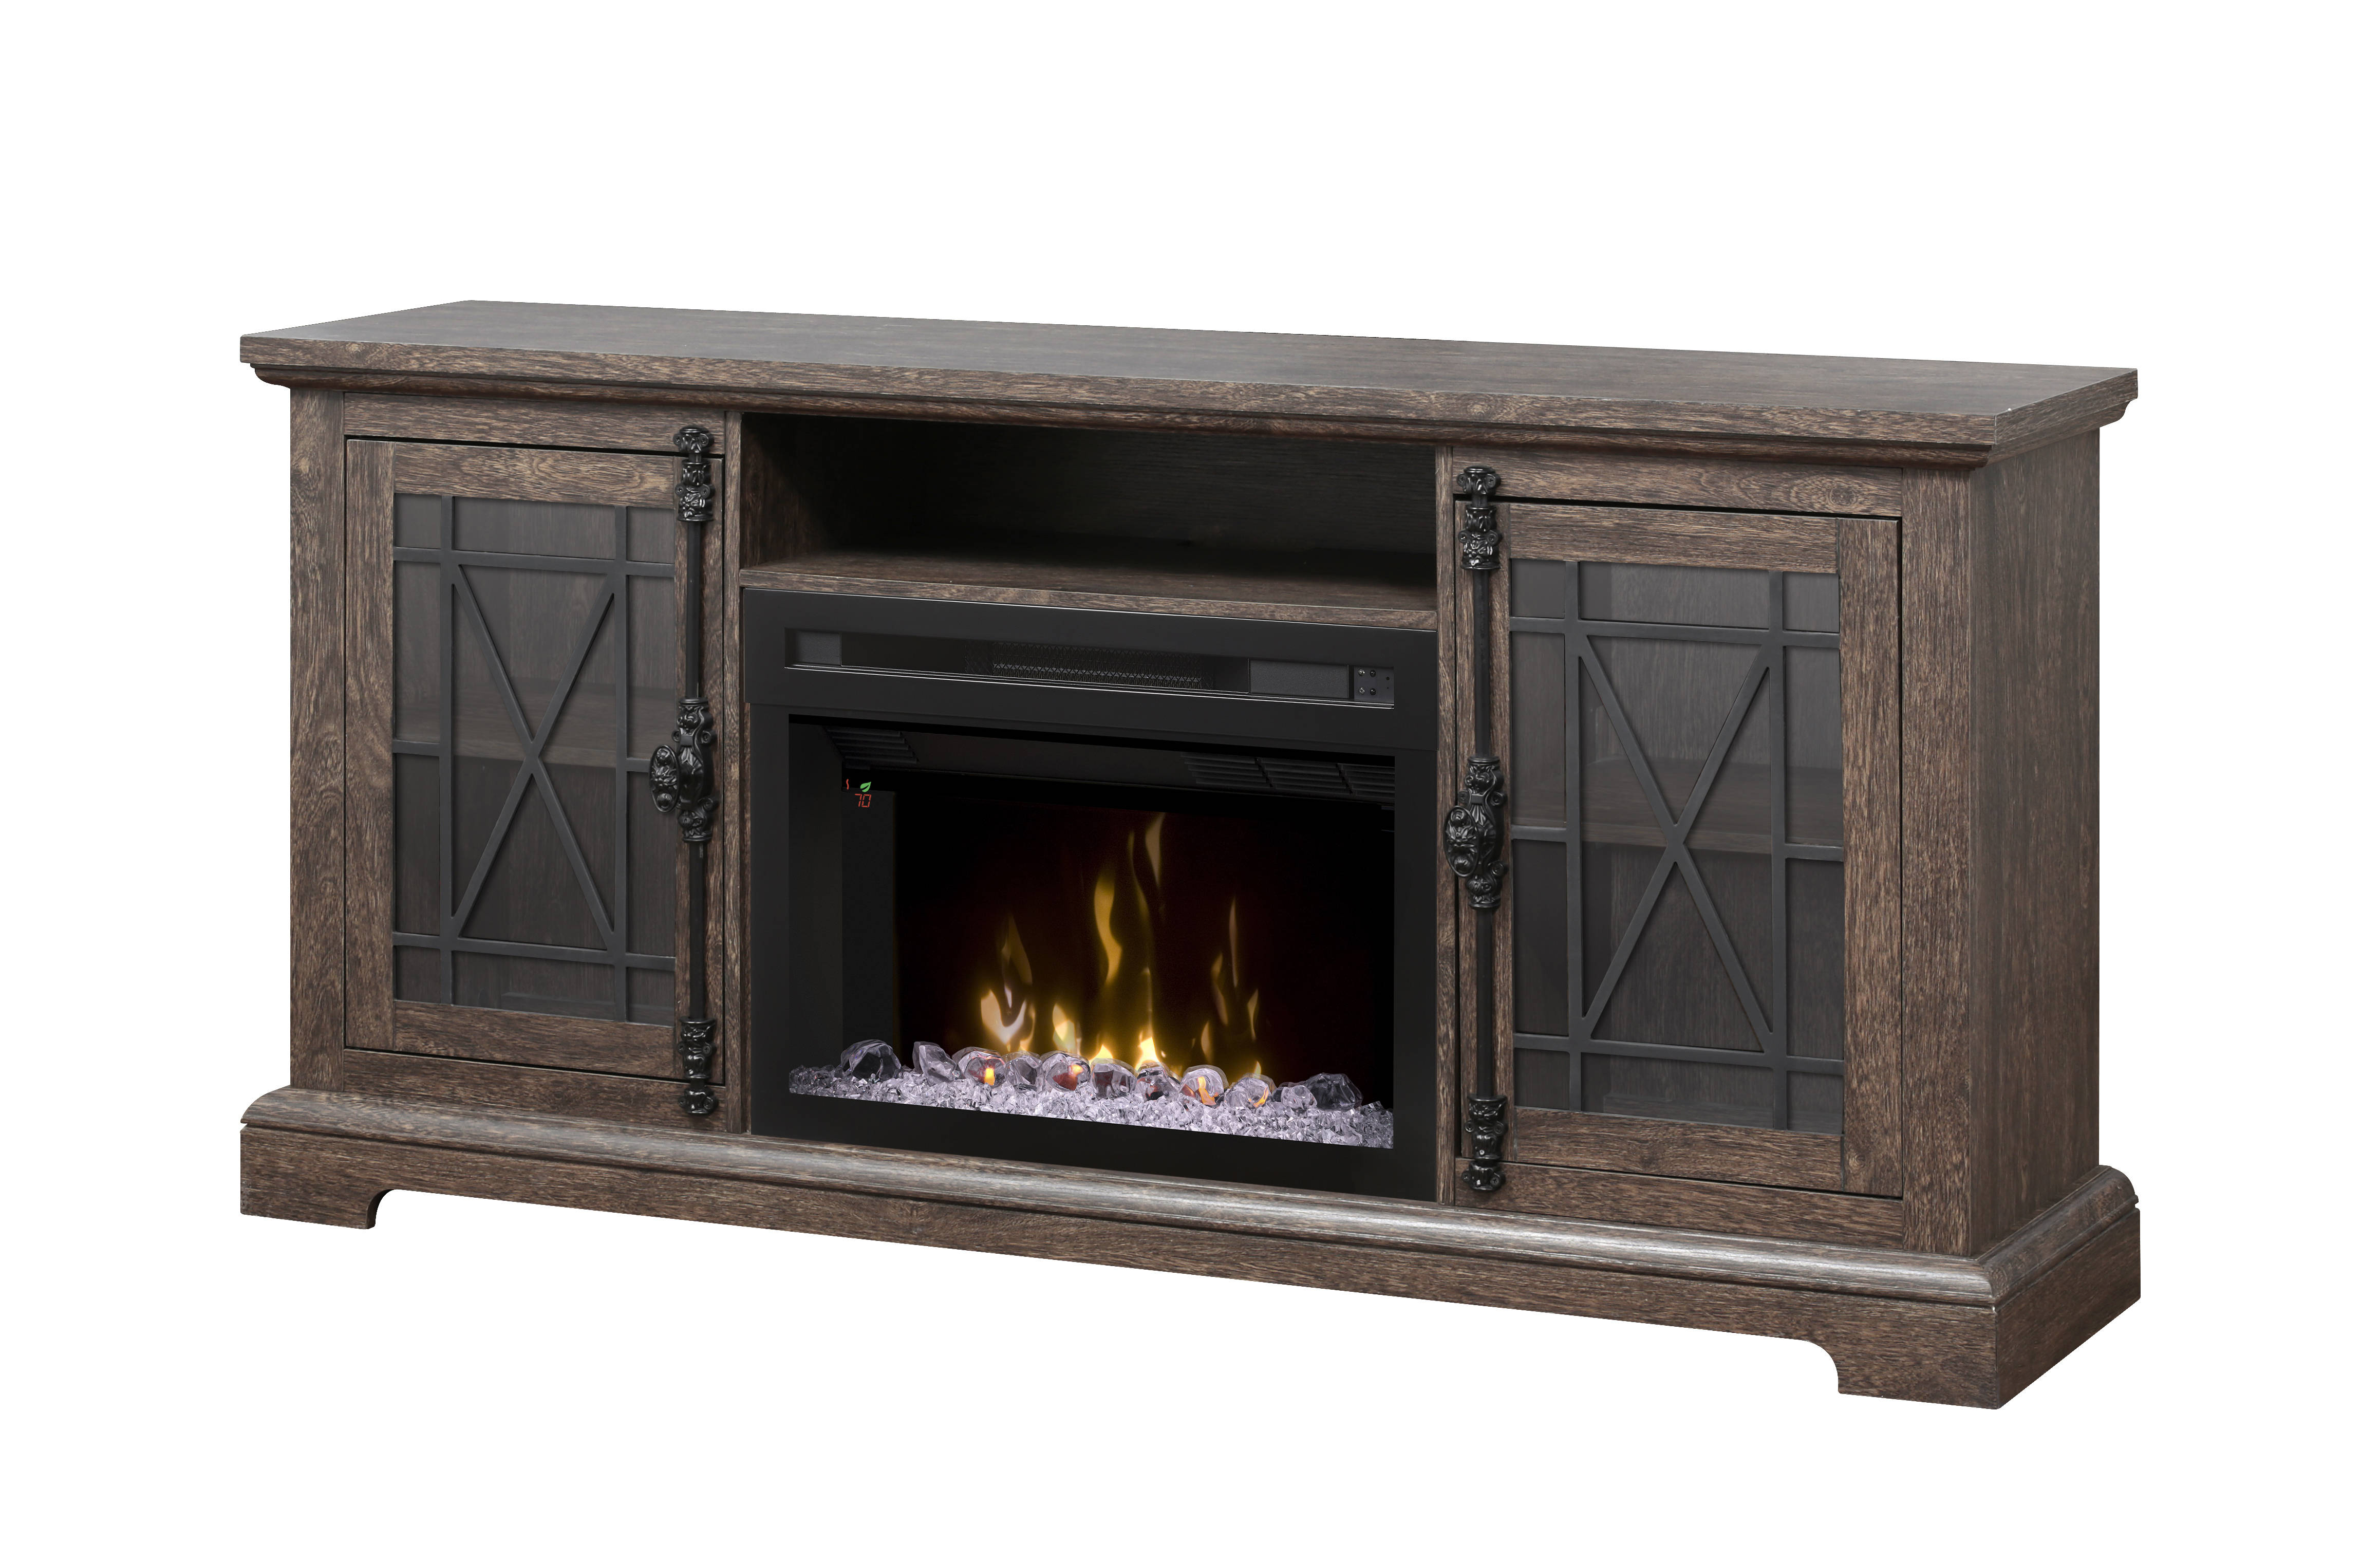 Dimplex natalie elm brown hardwood media console electric - Going to bed with embers in fireplace ...